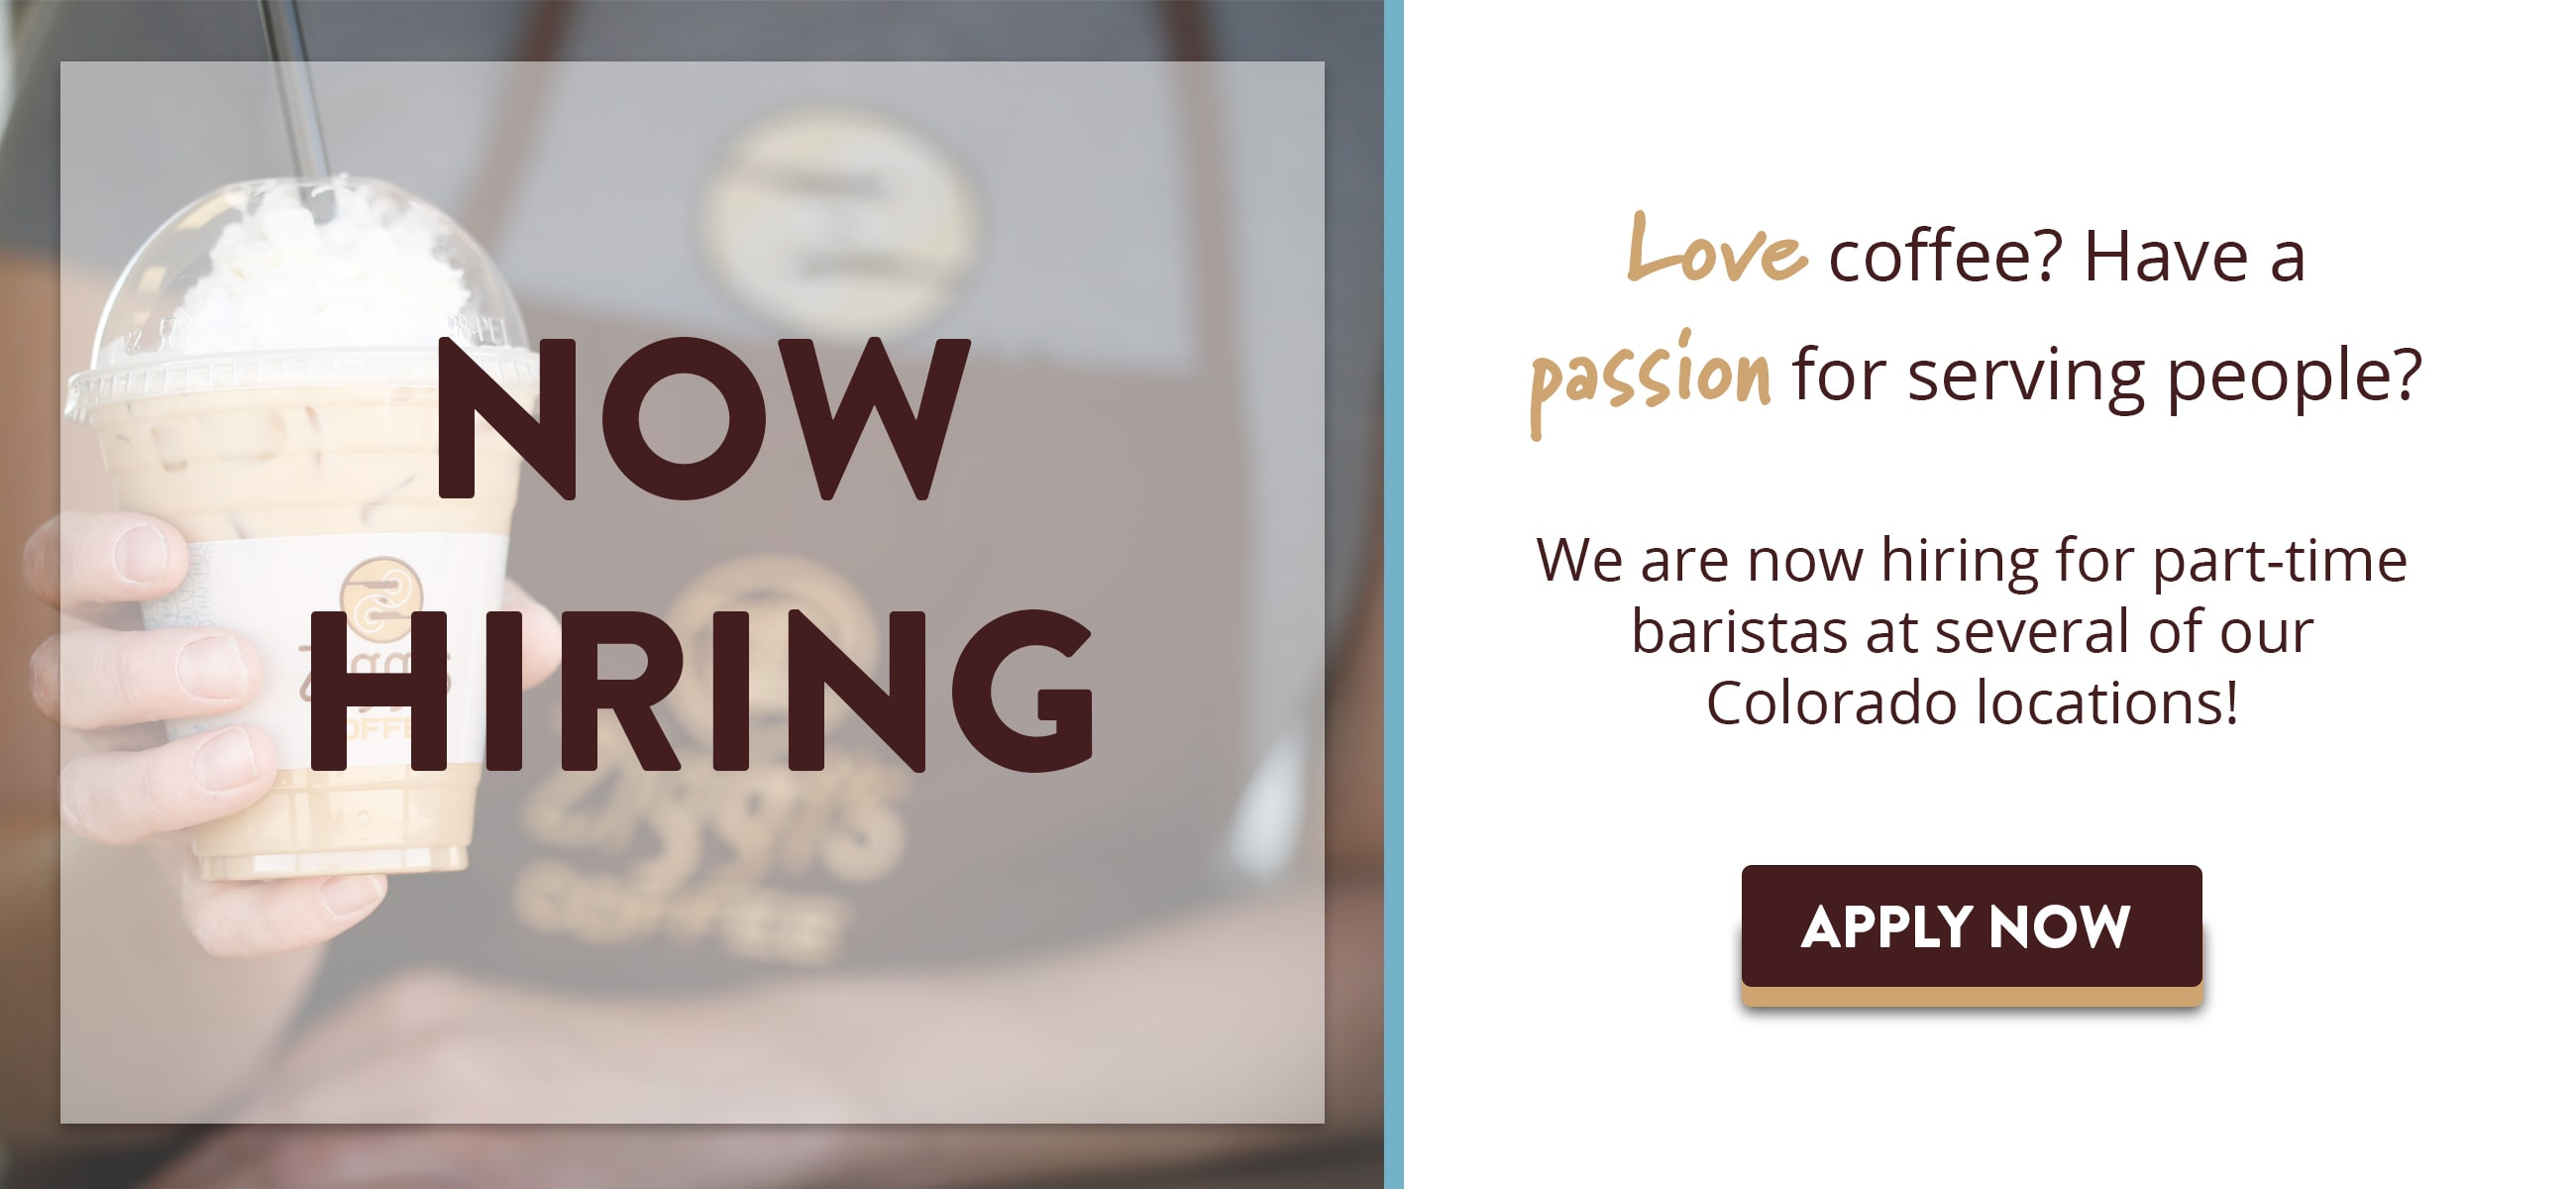 Picture of barista holding Ziggi's Coffee iced drink | Love coffee? Have a passion for serving people? Ziggi's Coffee is now hiring for a part-time barista at several of its Colorado locations. Apply today!